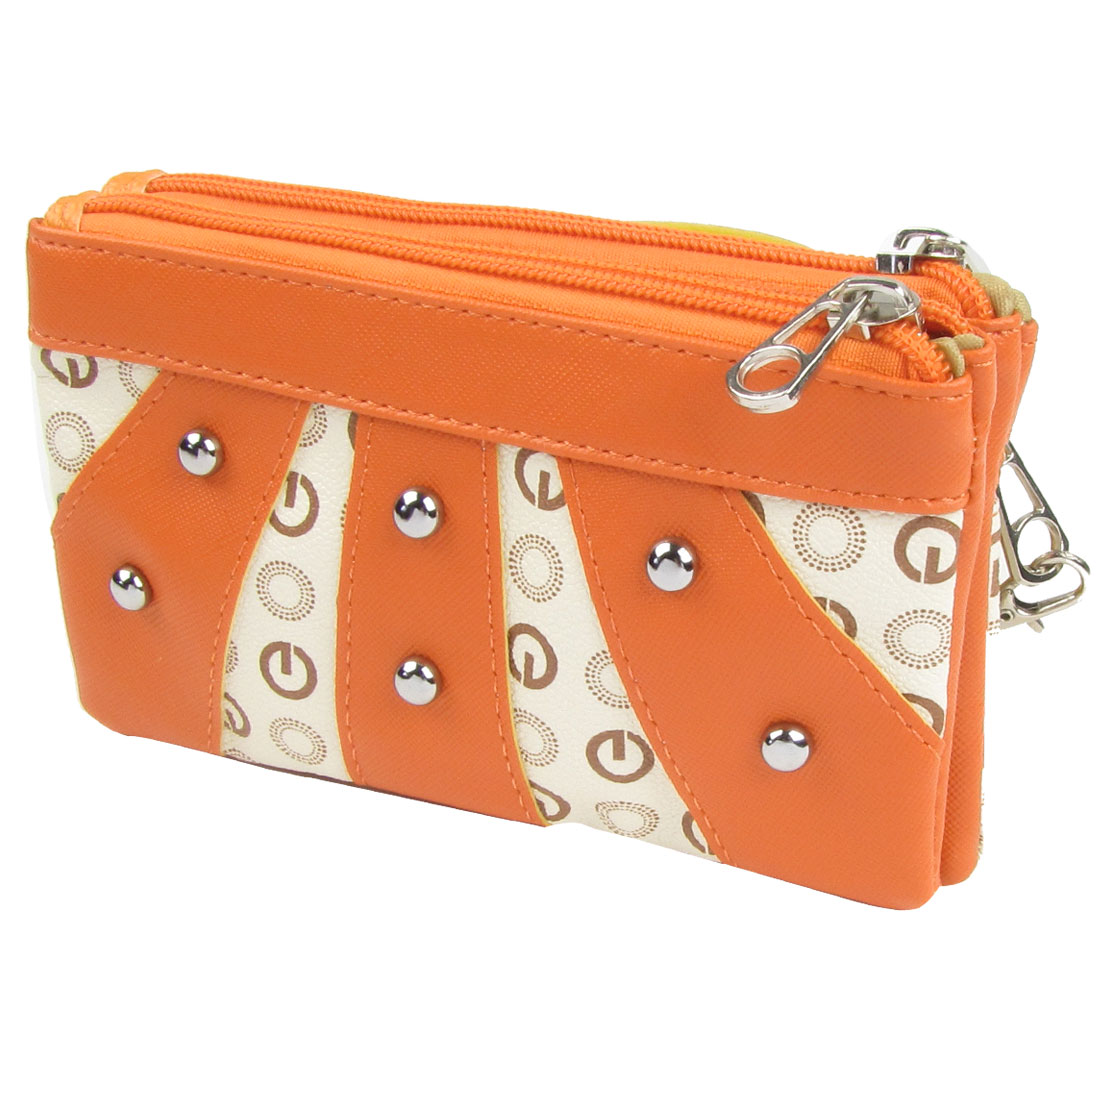 Women Stud Decor Faux Leather Zip up Wallet Orange Ivory for Coin ID Card